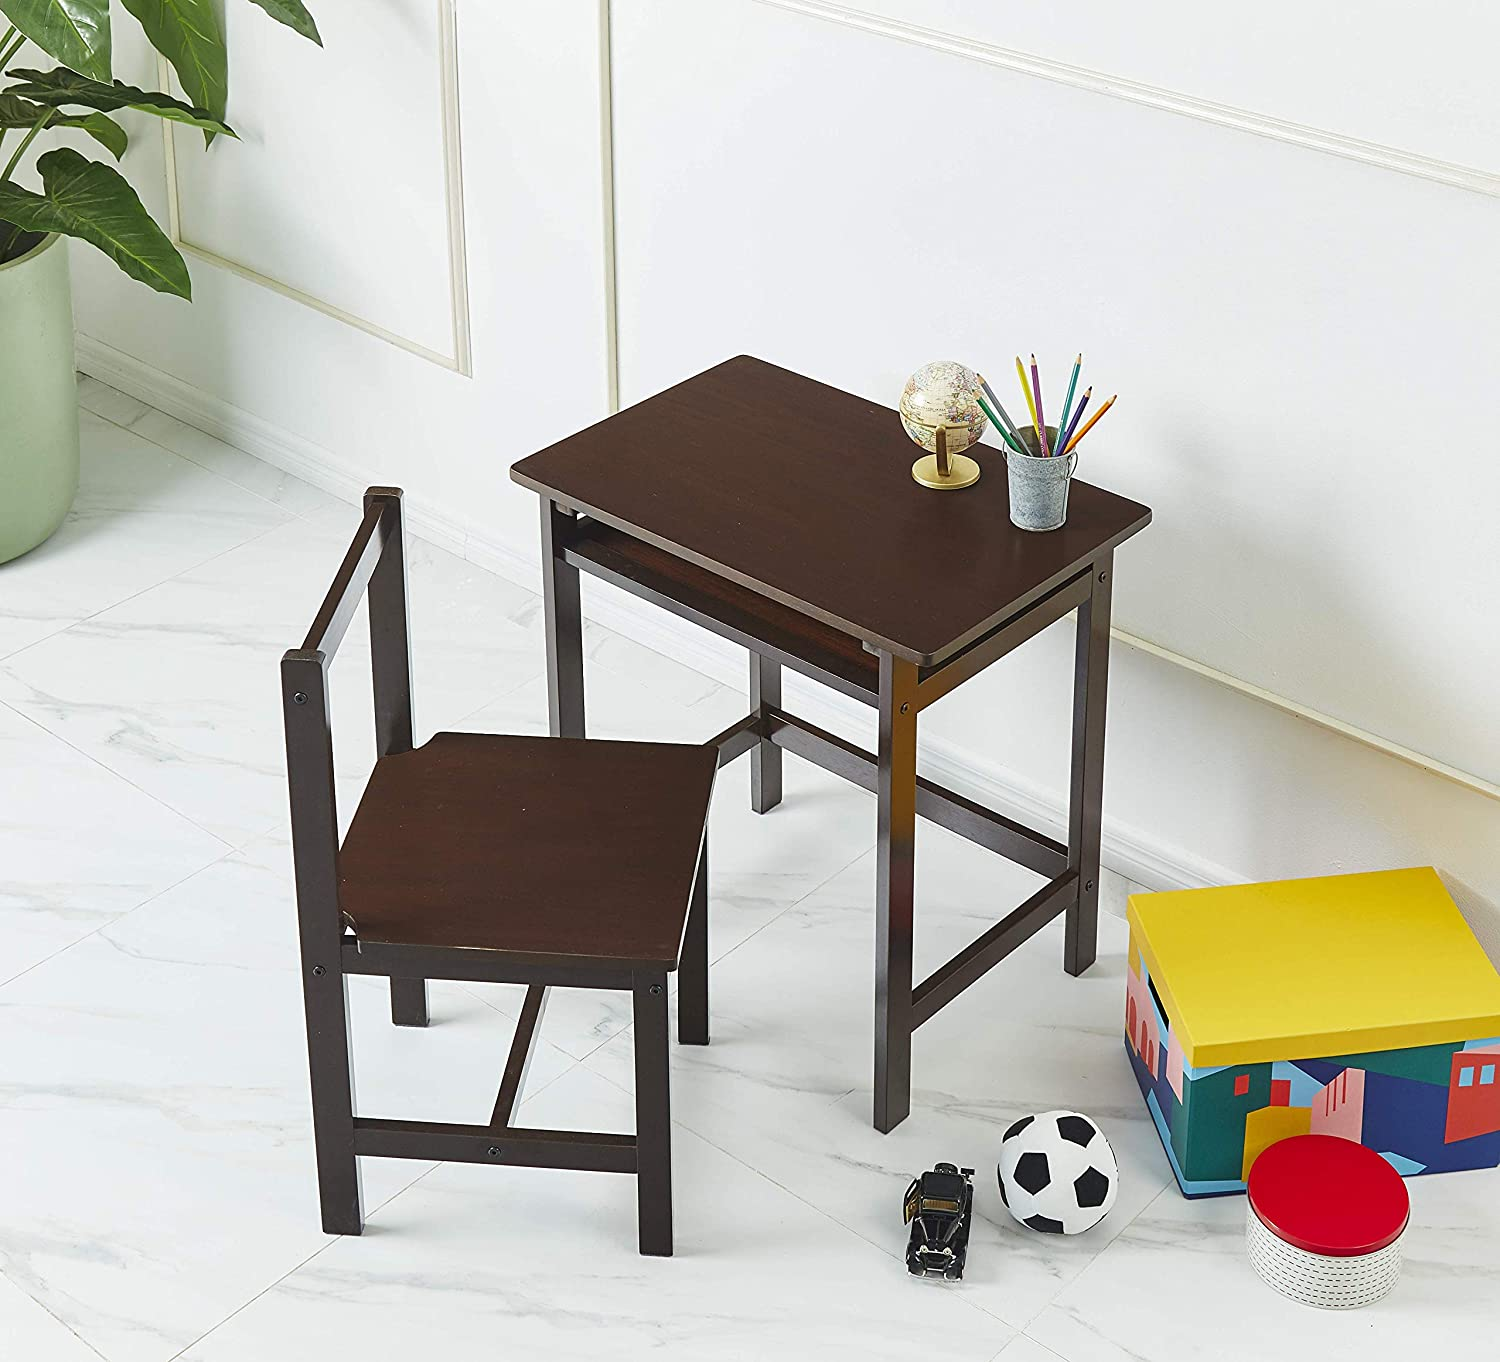 AmazonBasics Solid Wood Kid Desk and Chair, Espresso